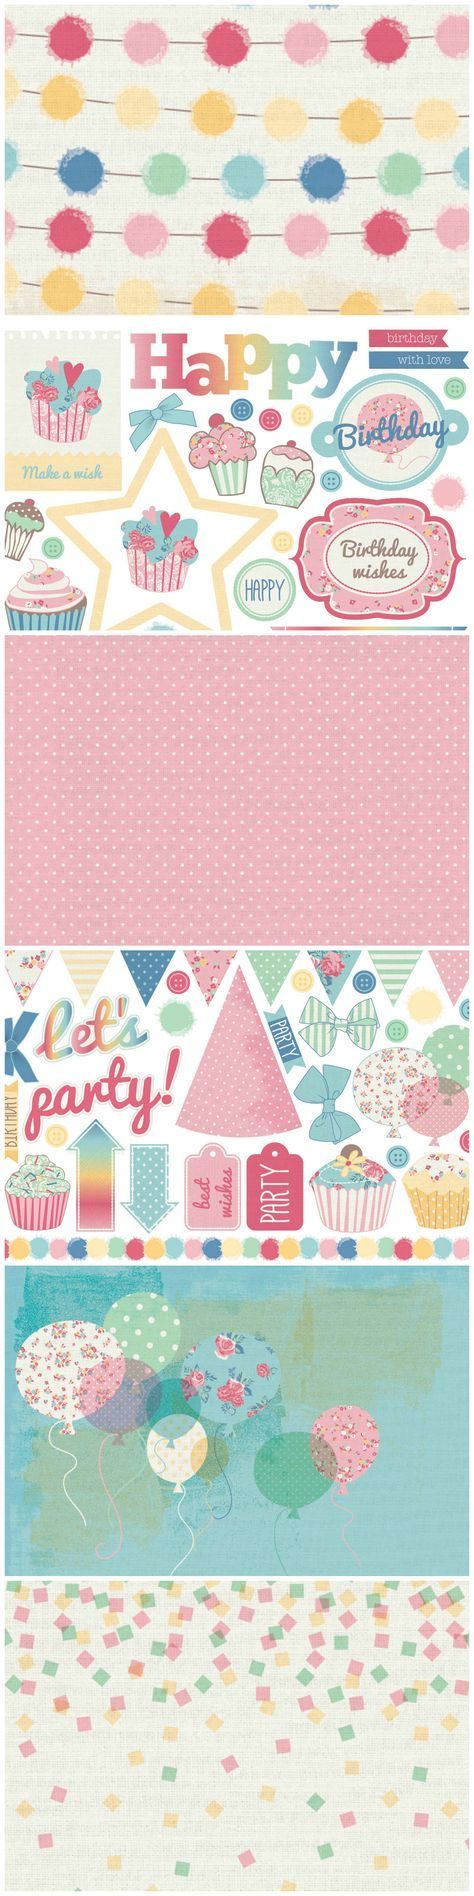 3262 Best Printables Images On Pinterest Planner Ideas Free